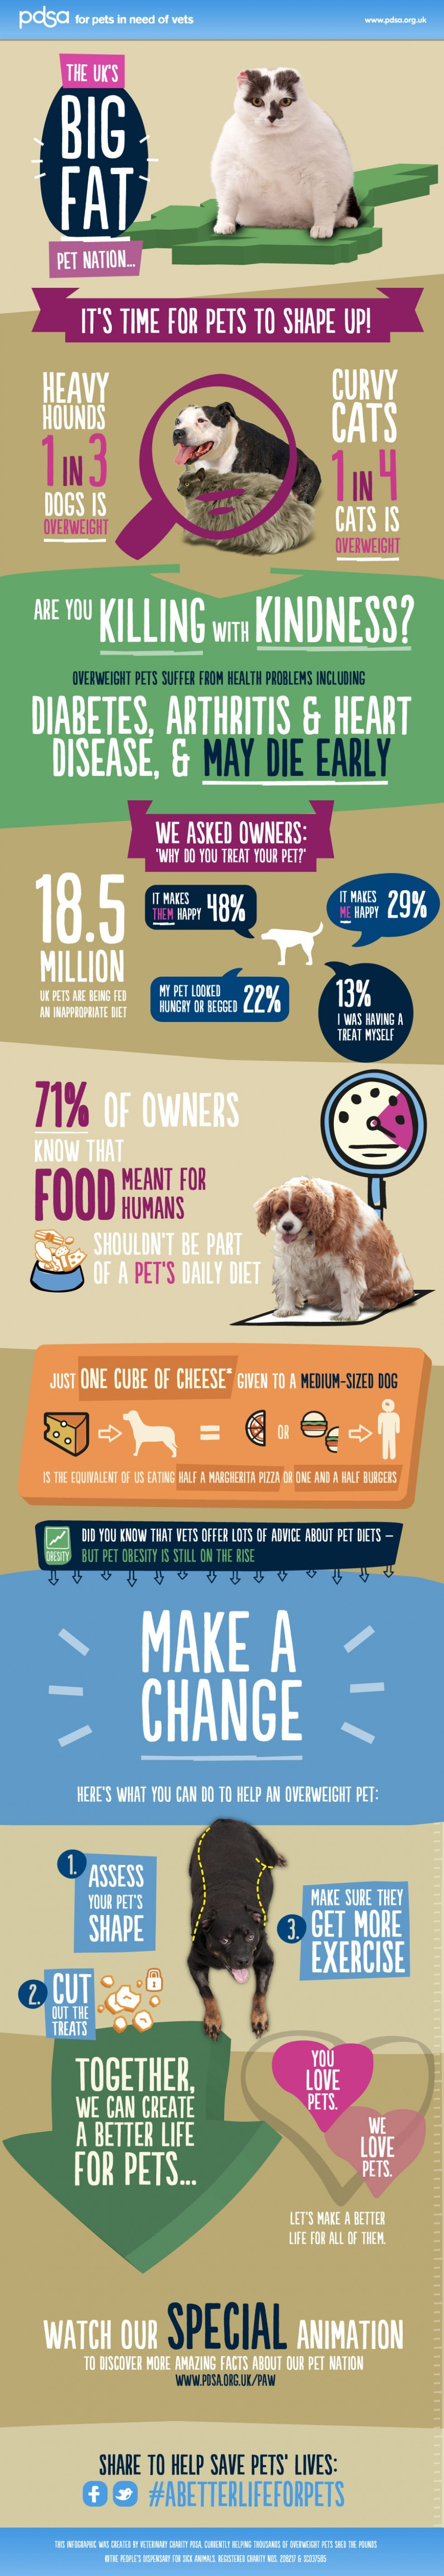 Big Fat Pet Nation UK: Obese Pet Facts (Infographic)